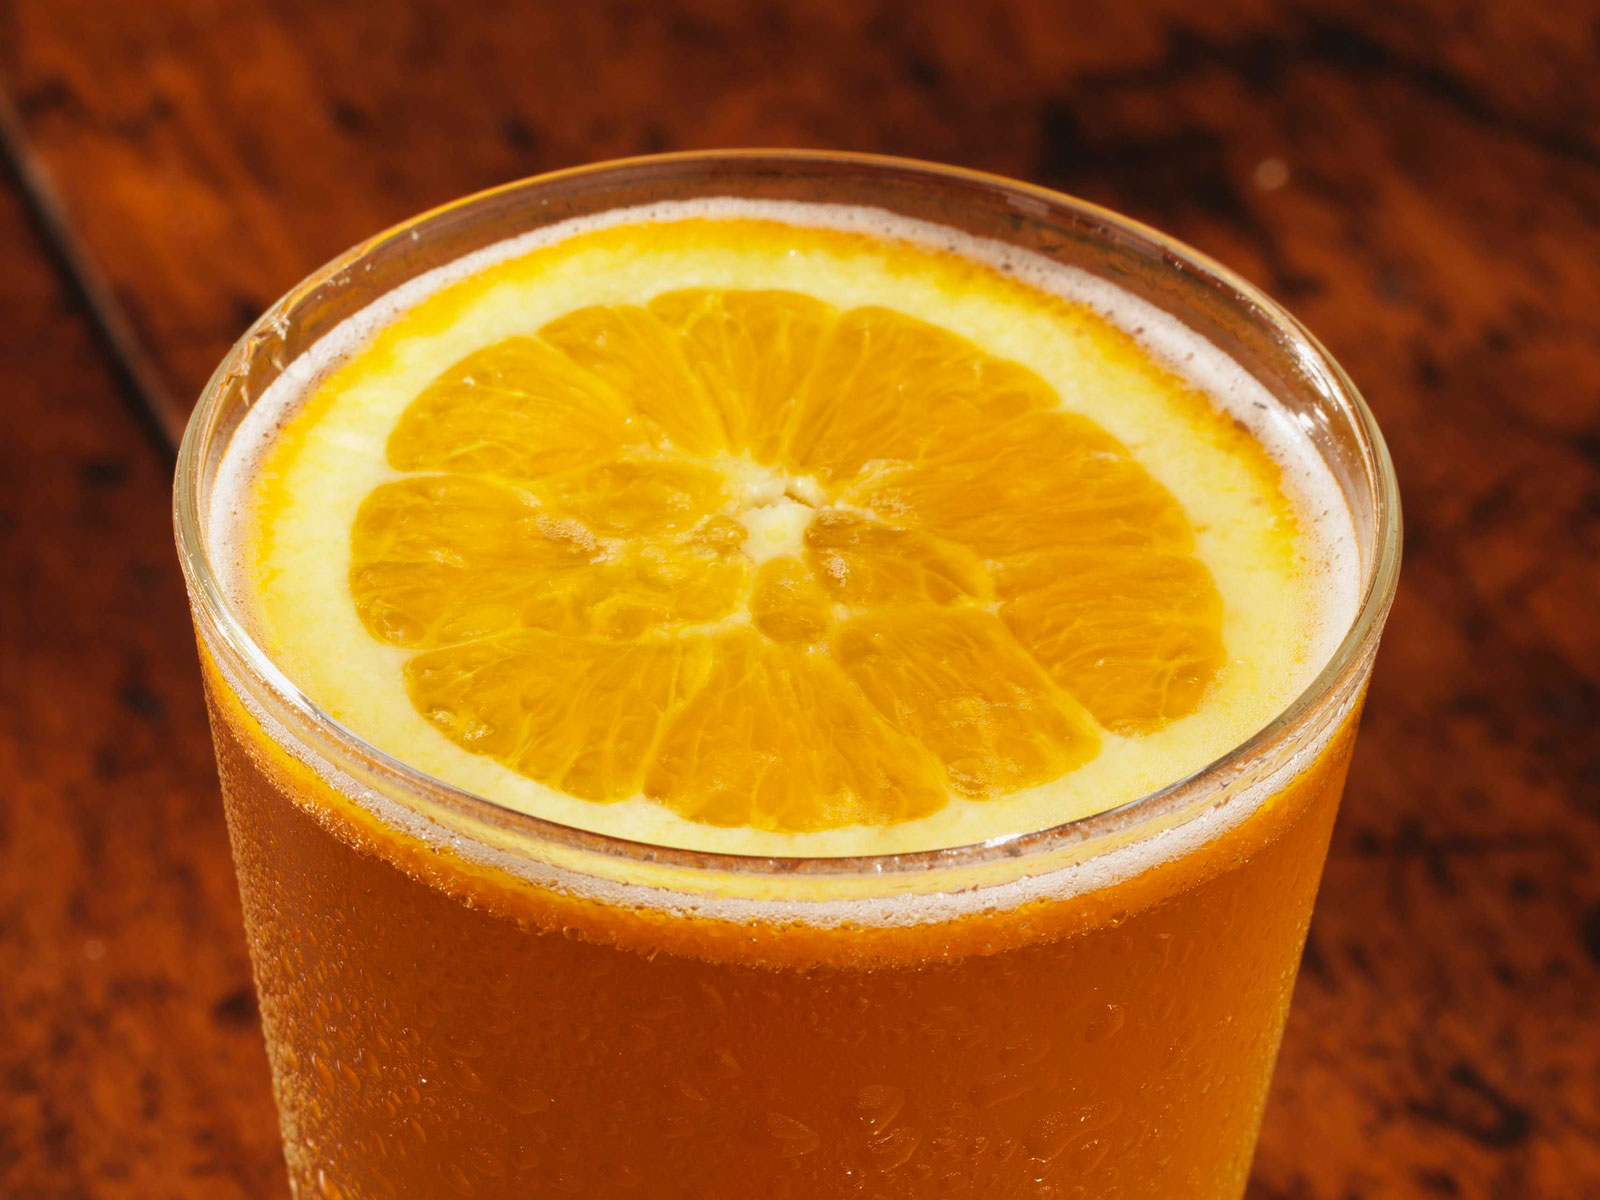 bud-light-orange-FT-BLOG0418.jpg